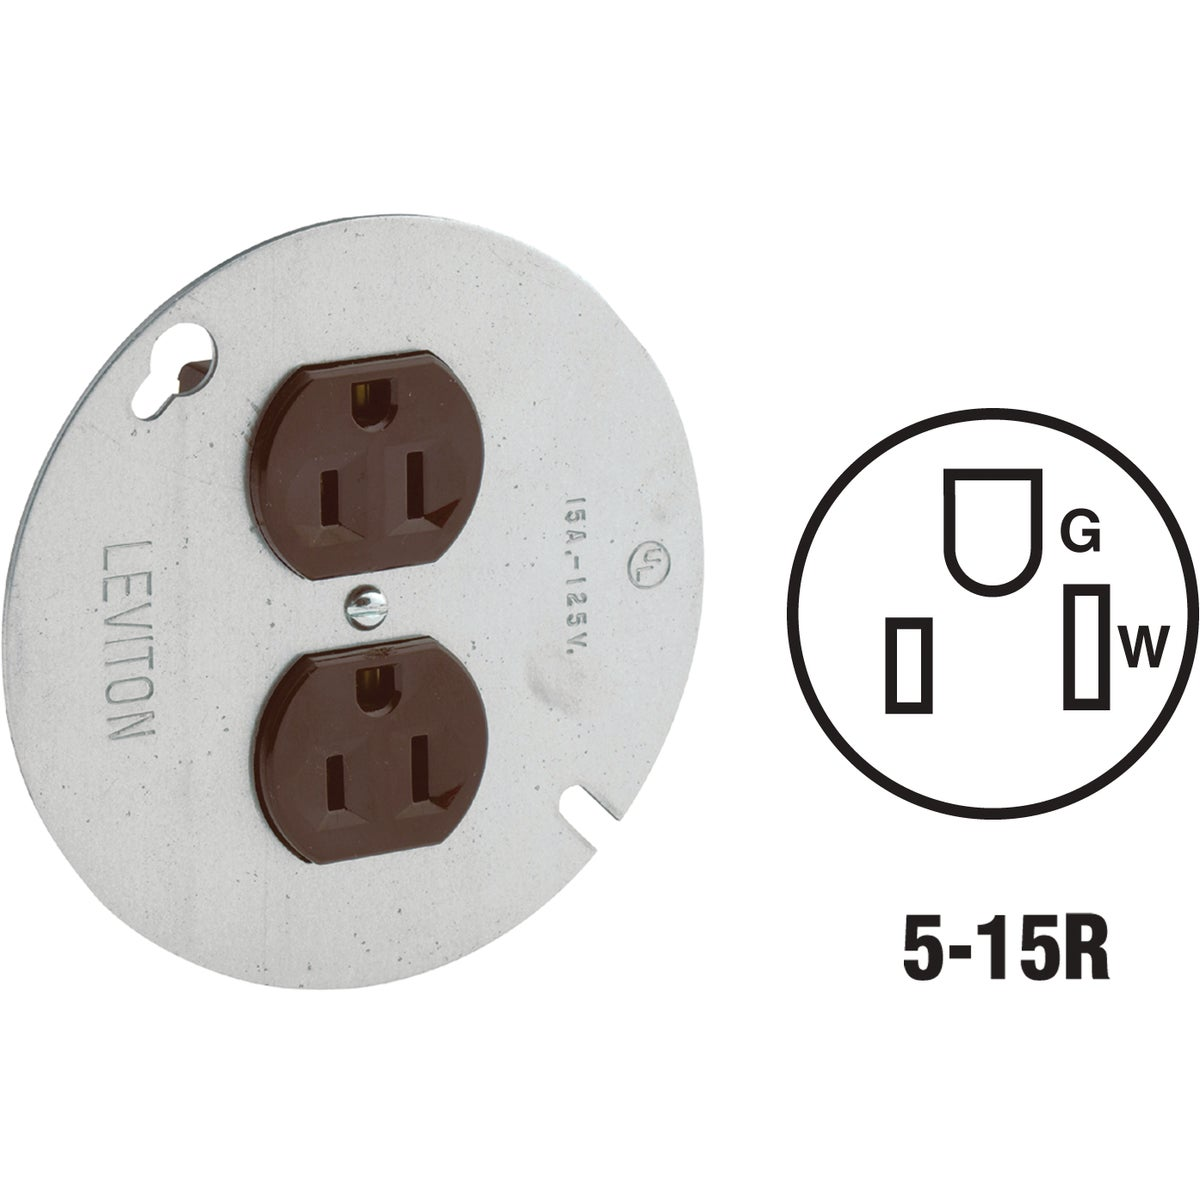 OUTLET W/COVER